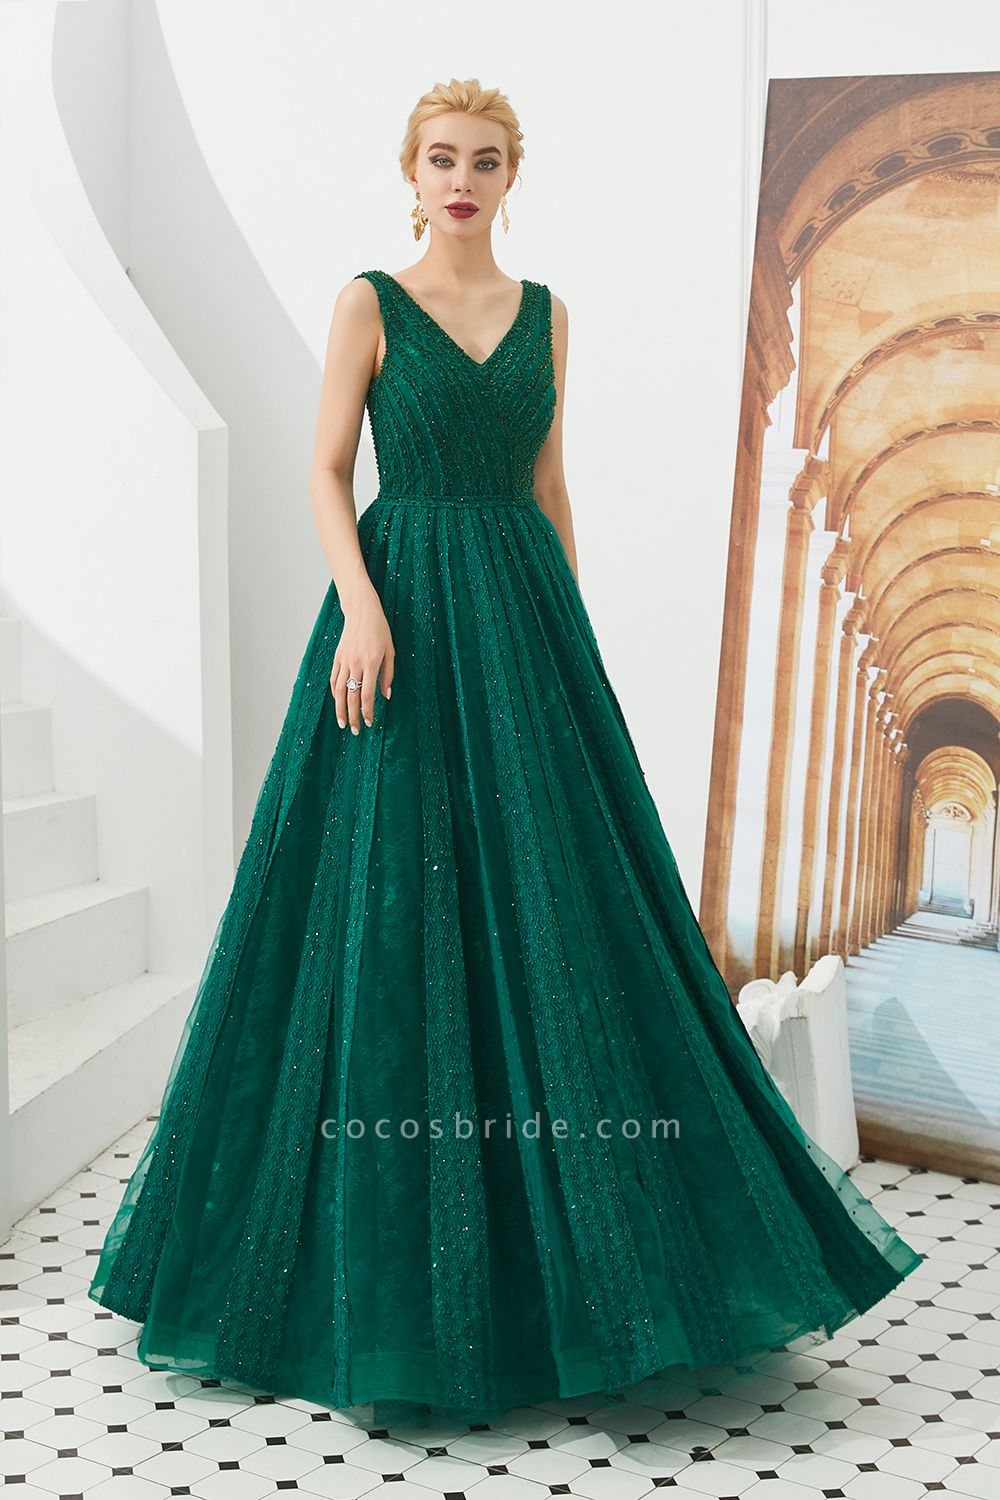 Awesome V-neck Tulle A-line Prom Dress